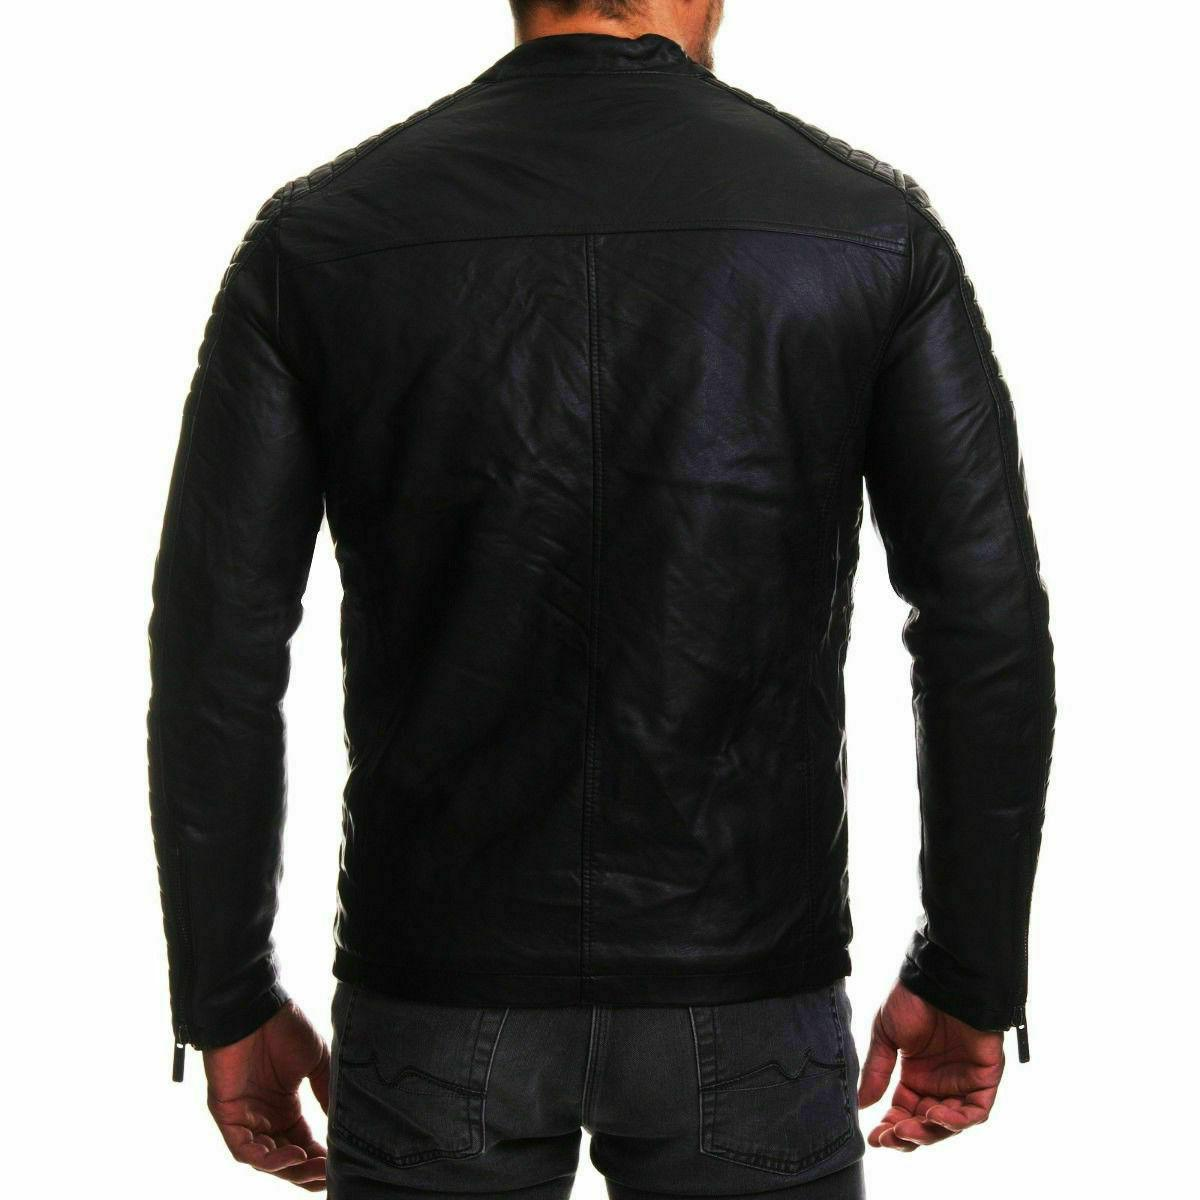 New 100% Leather Jacket Coat Men Slim Outwear Black Biker Moto